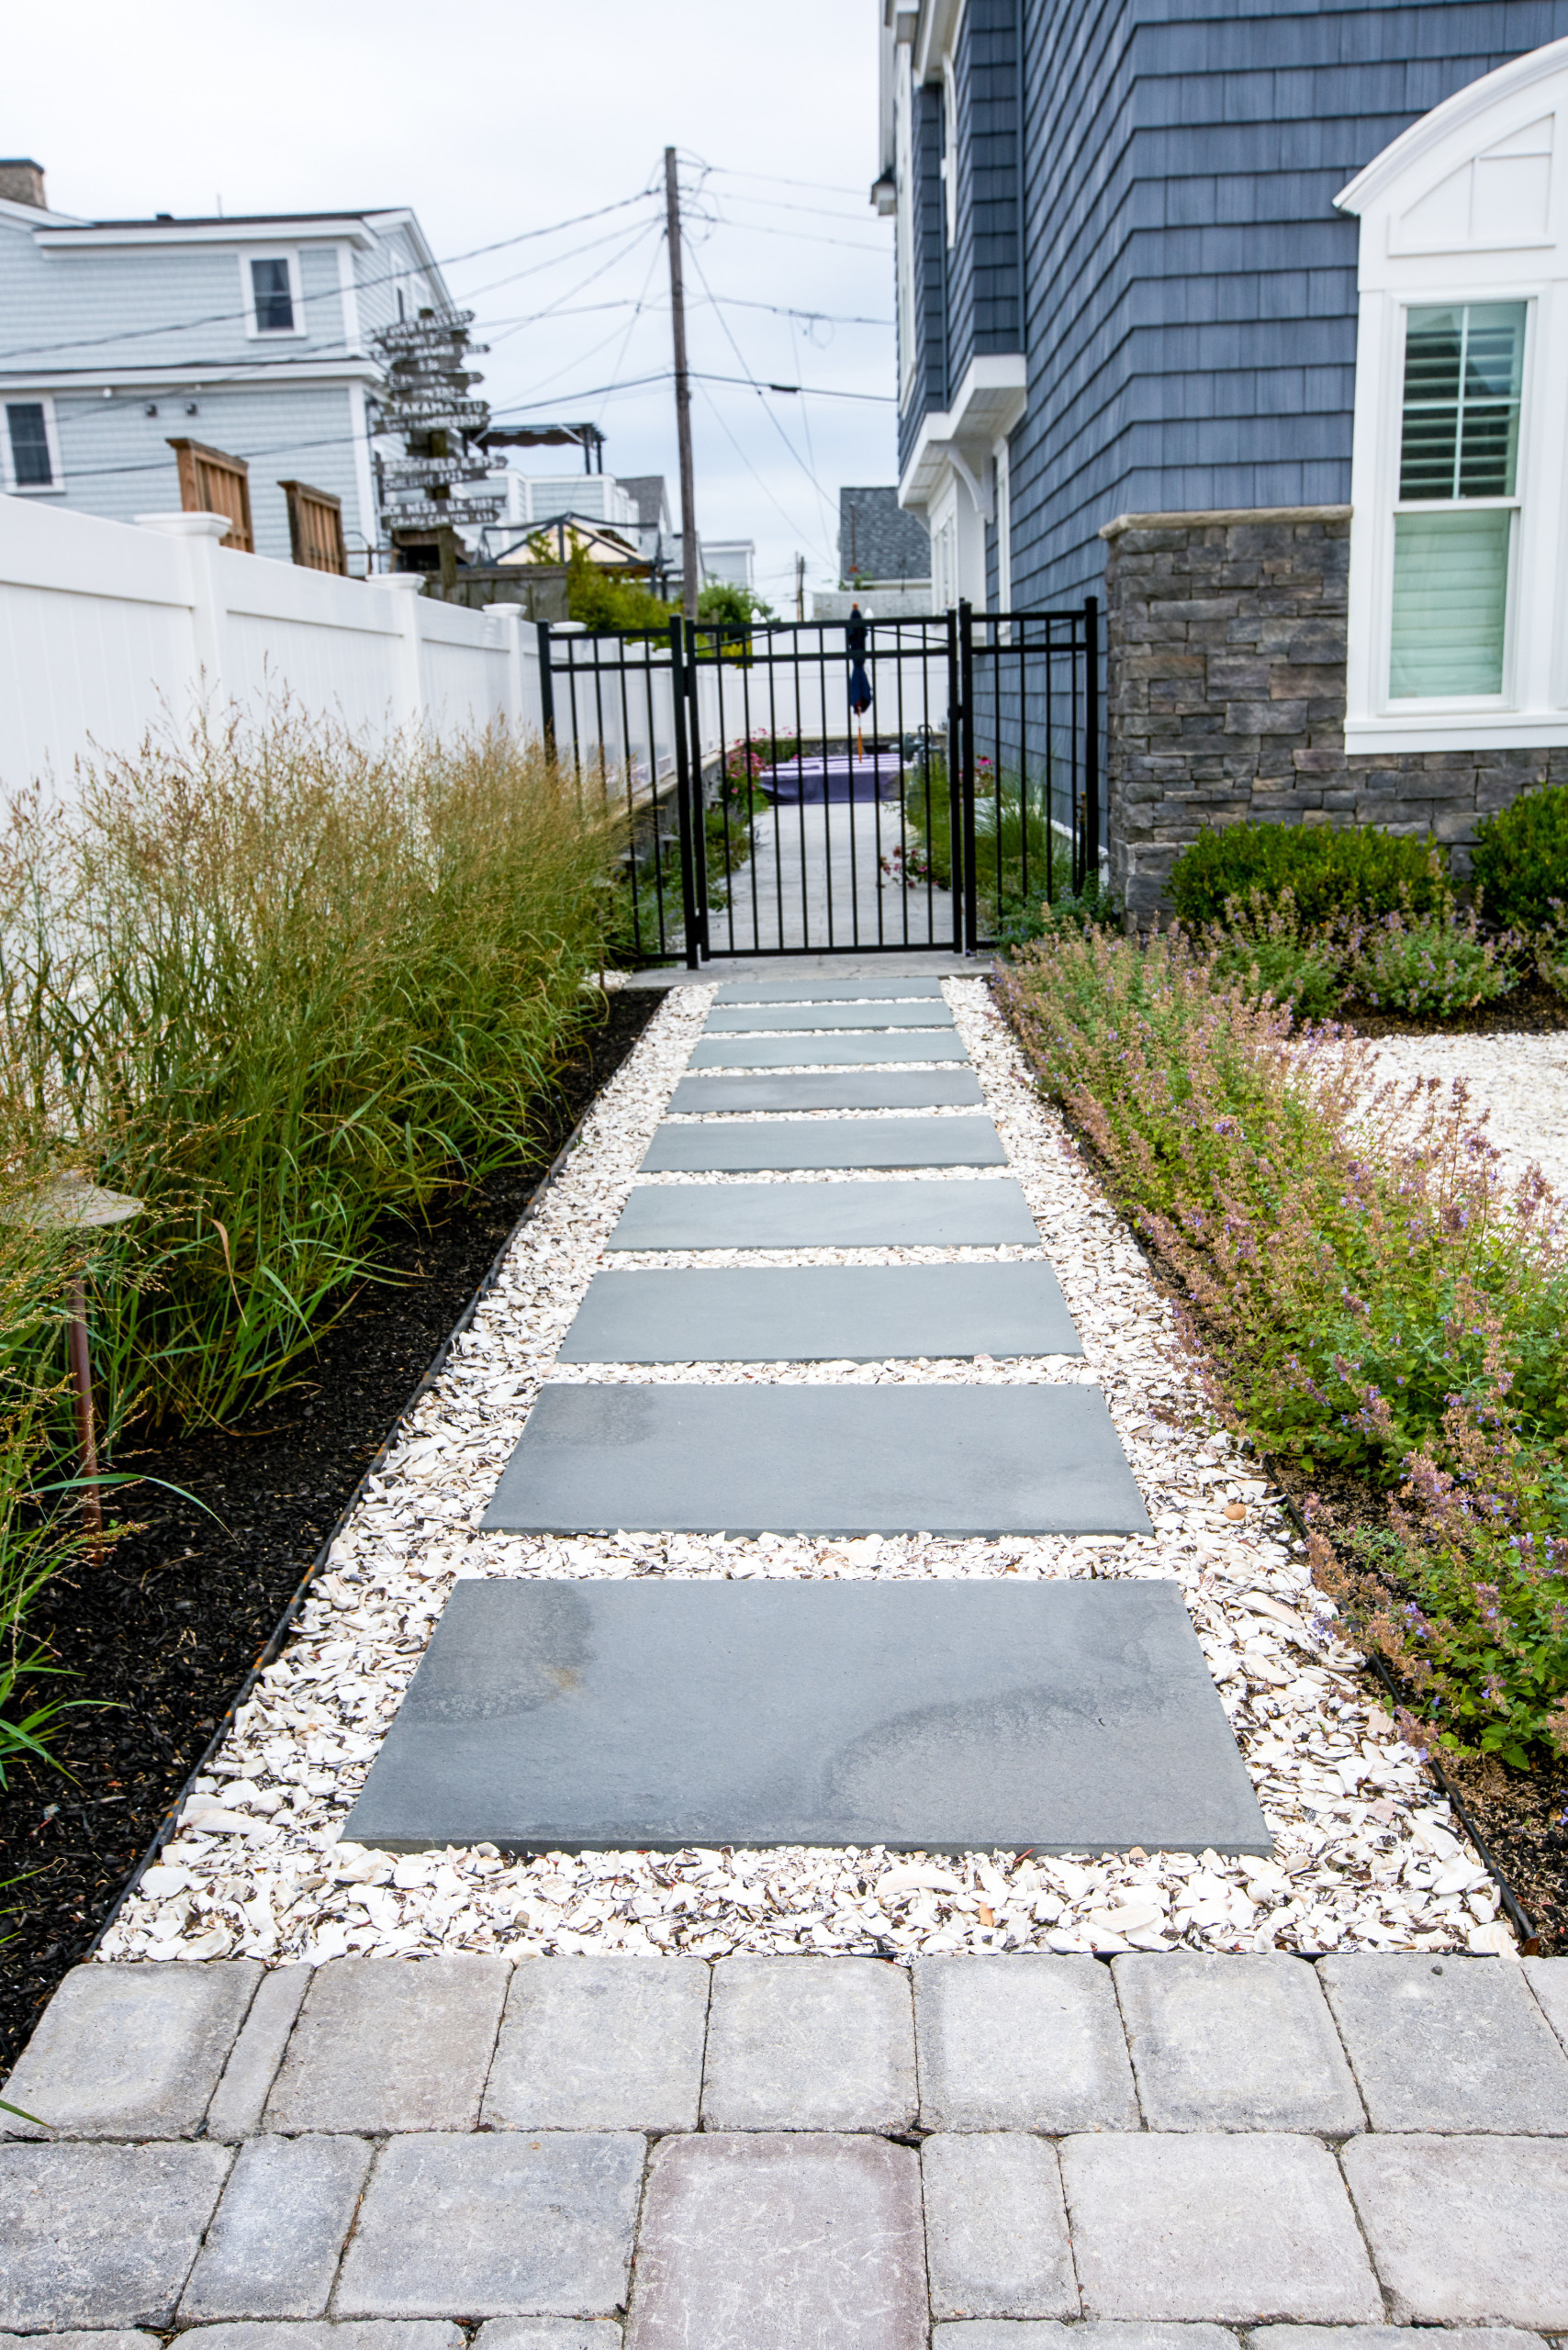 75 Beautiful Coastal Landscaping Pictures Ideas May 2021 Houzz